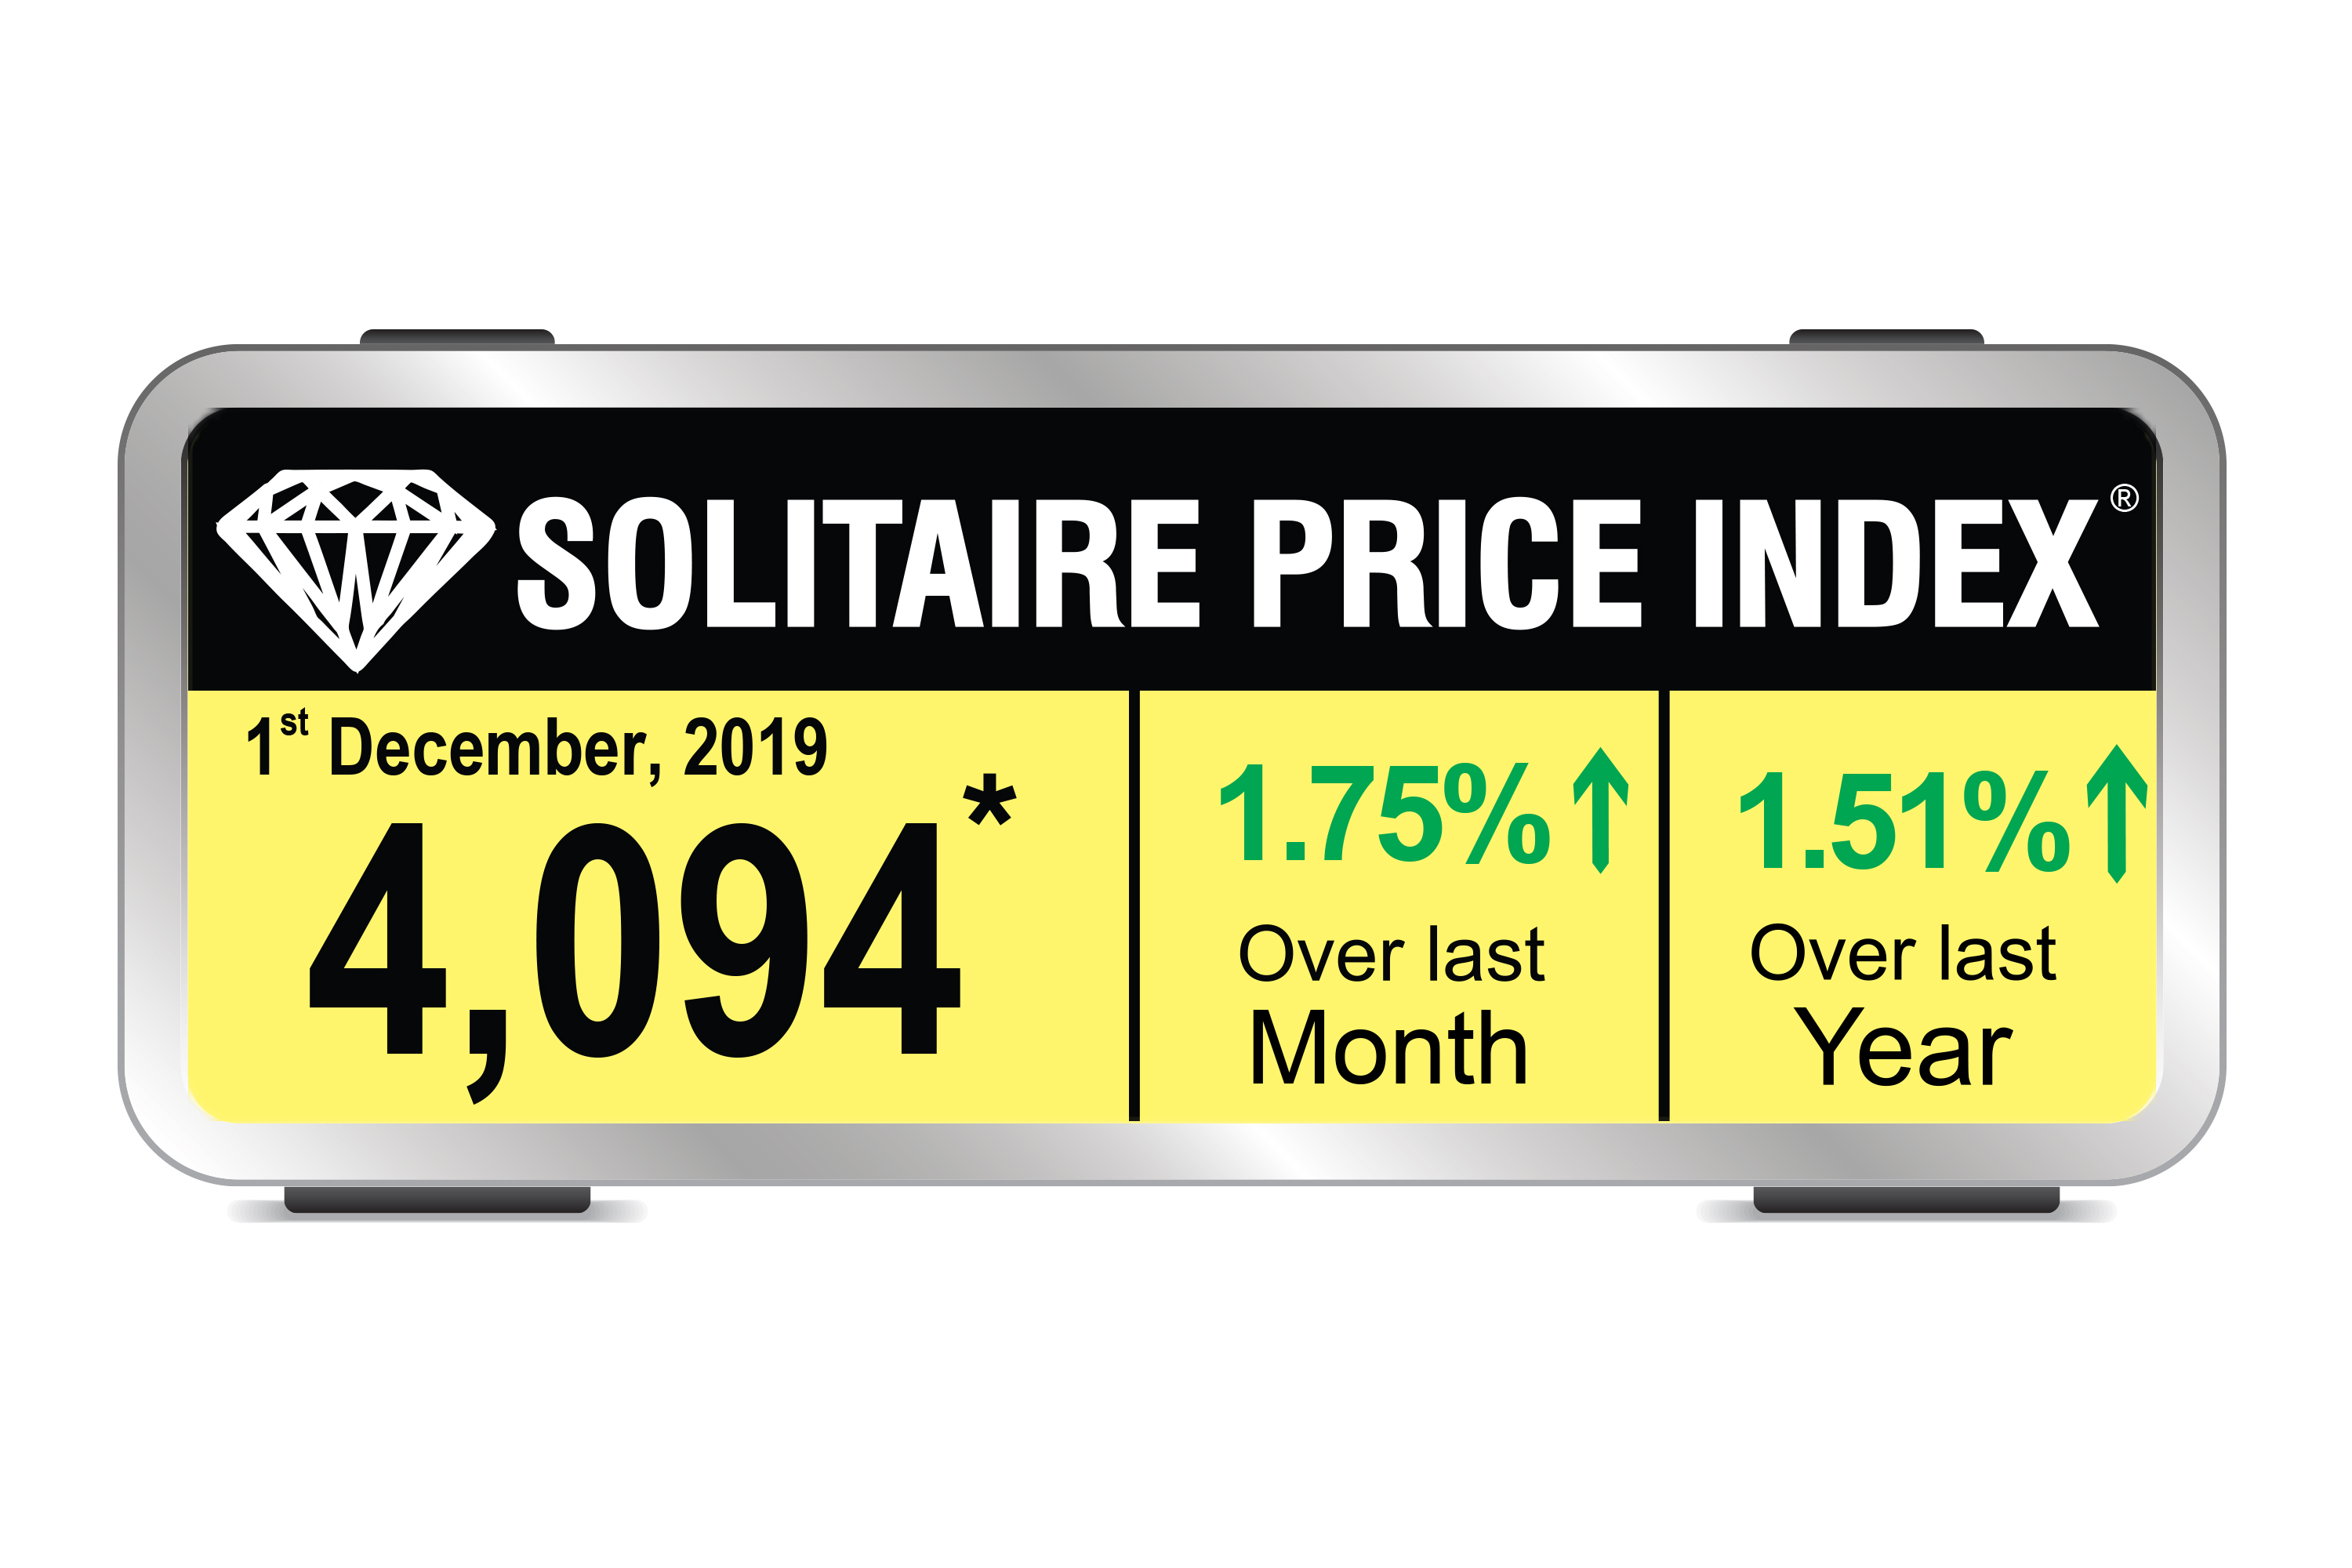 Solitaire Price Index